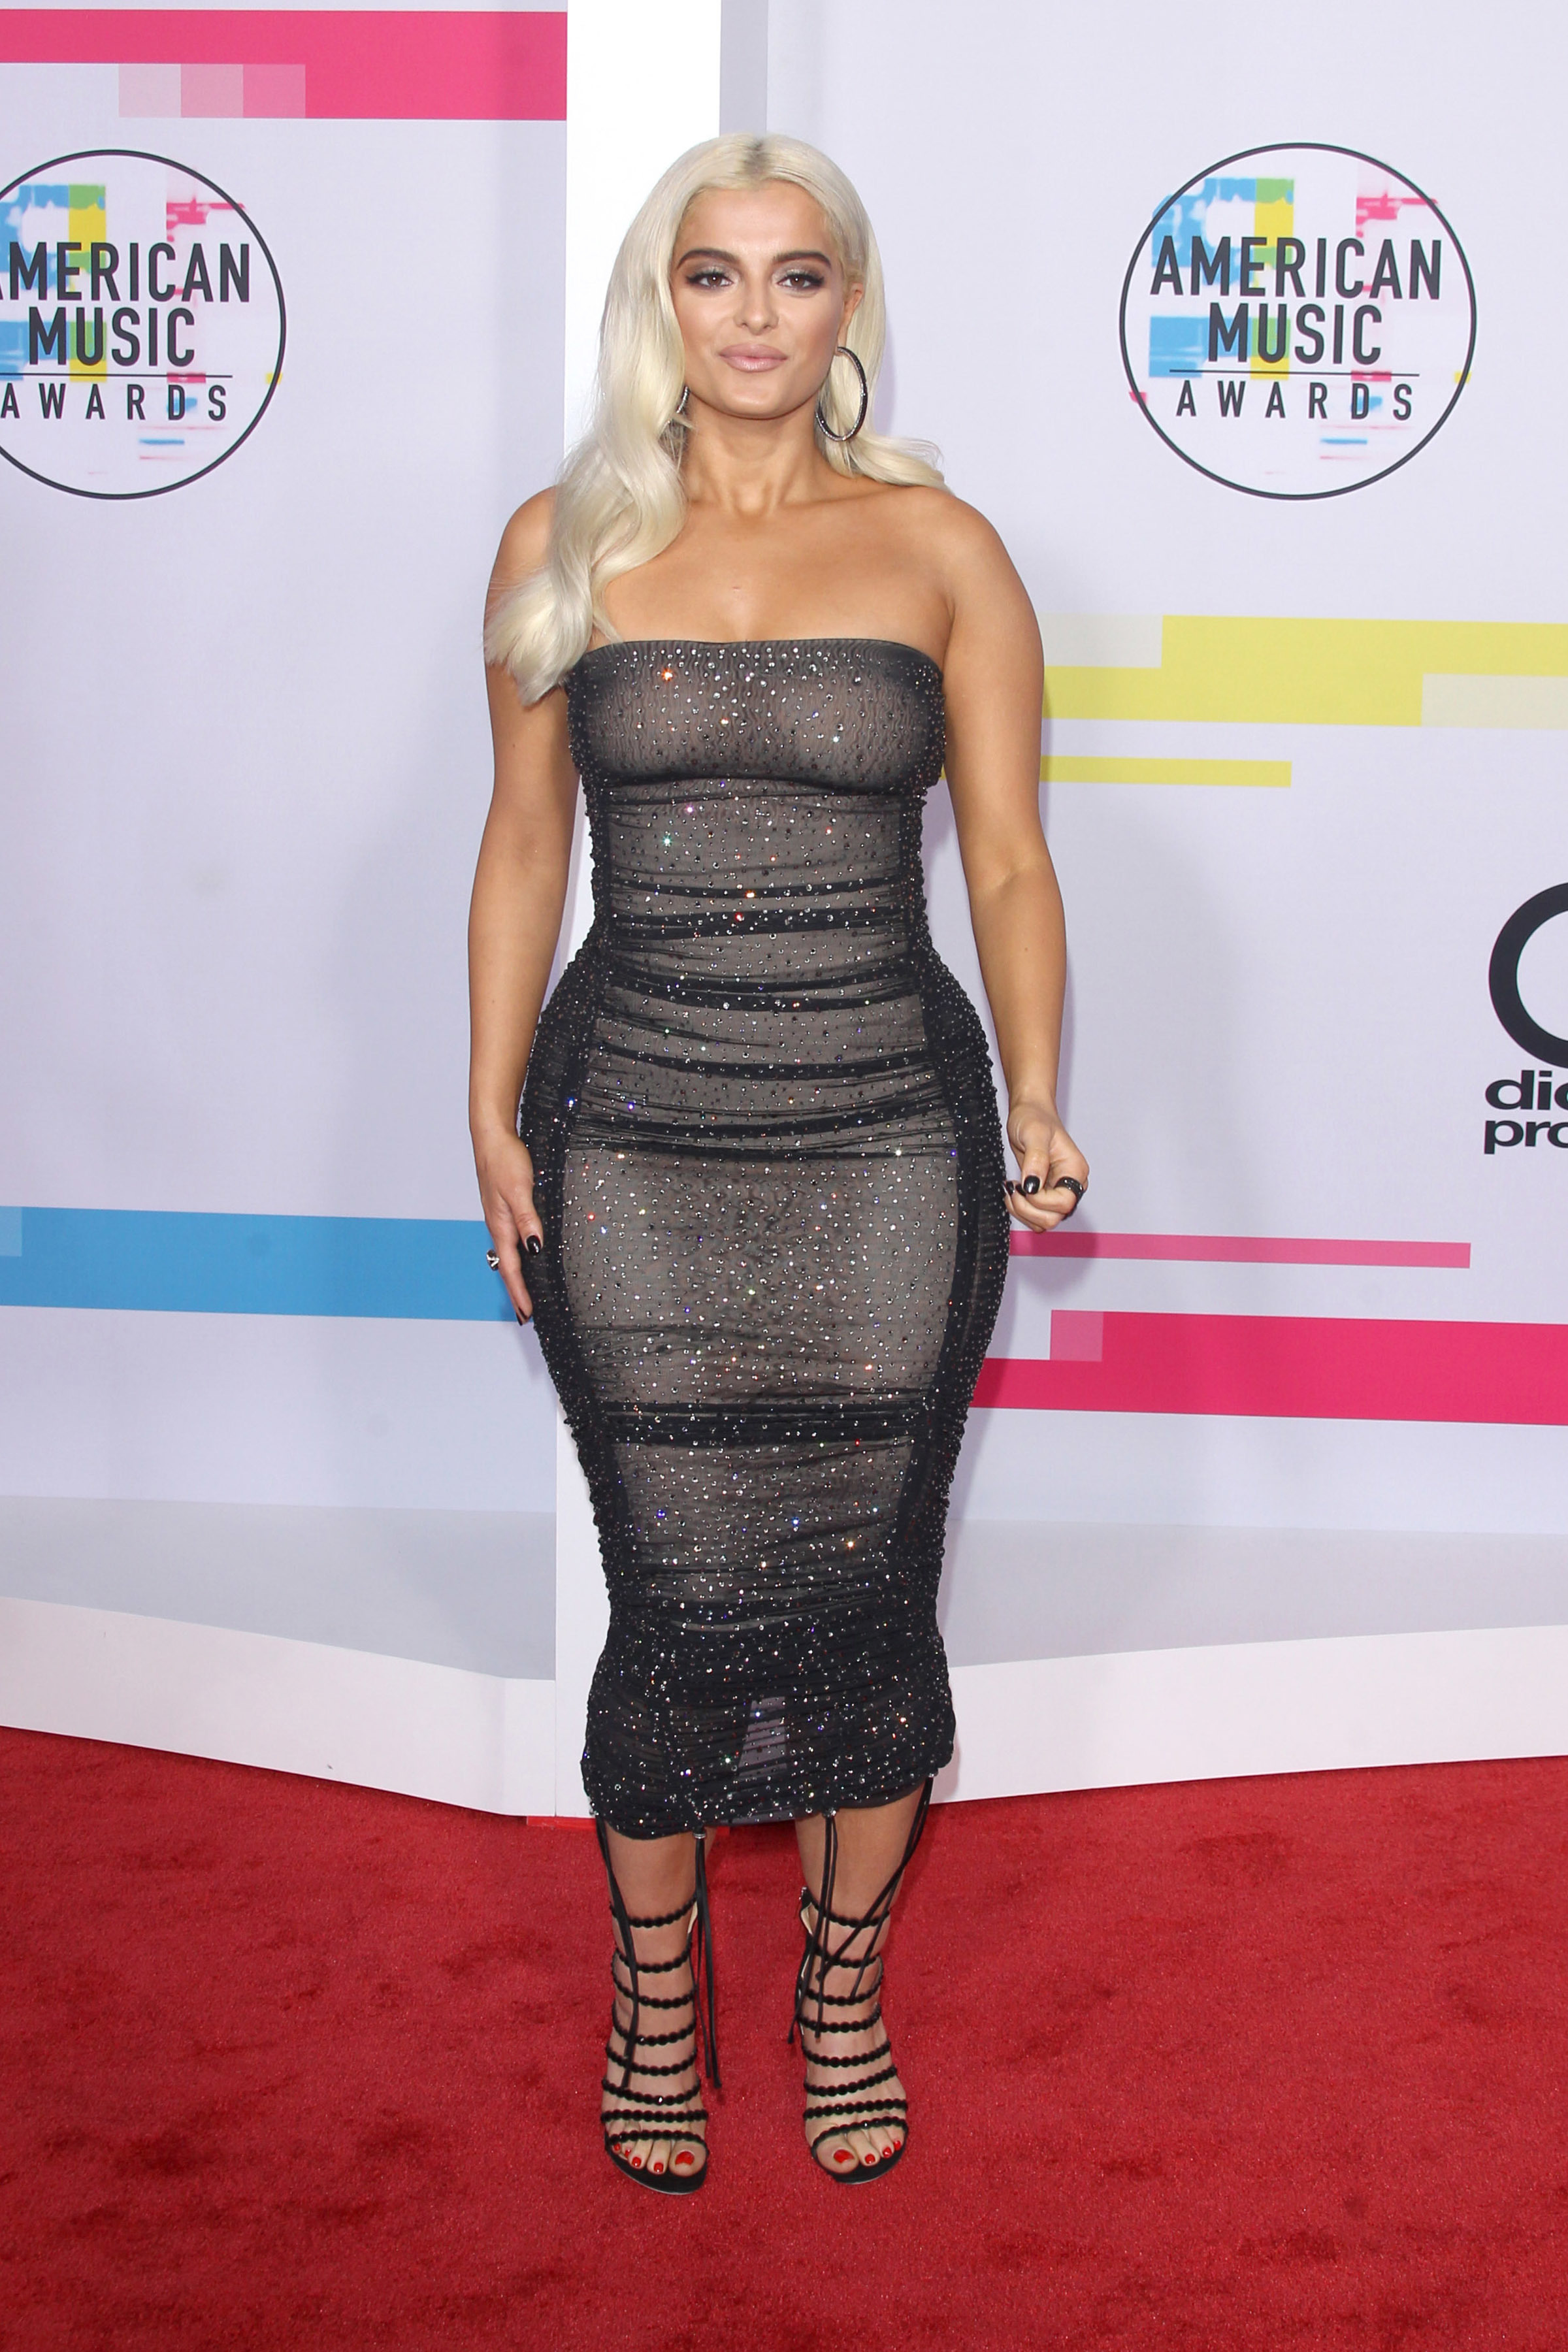 bebe rexha photos superepus news